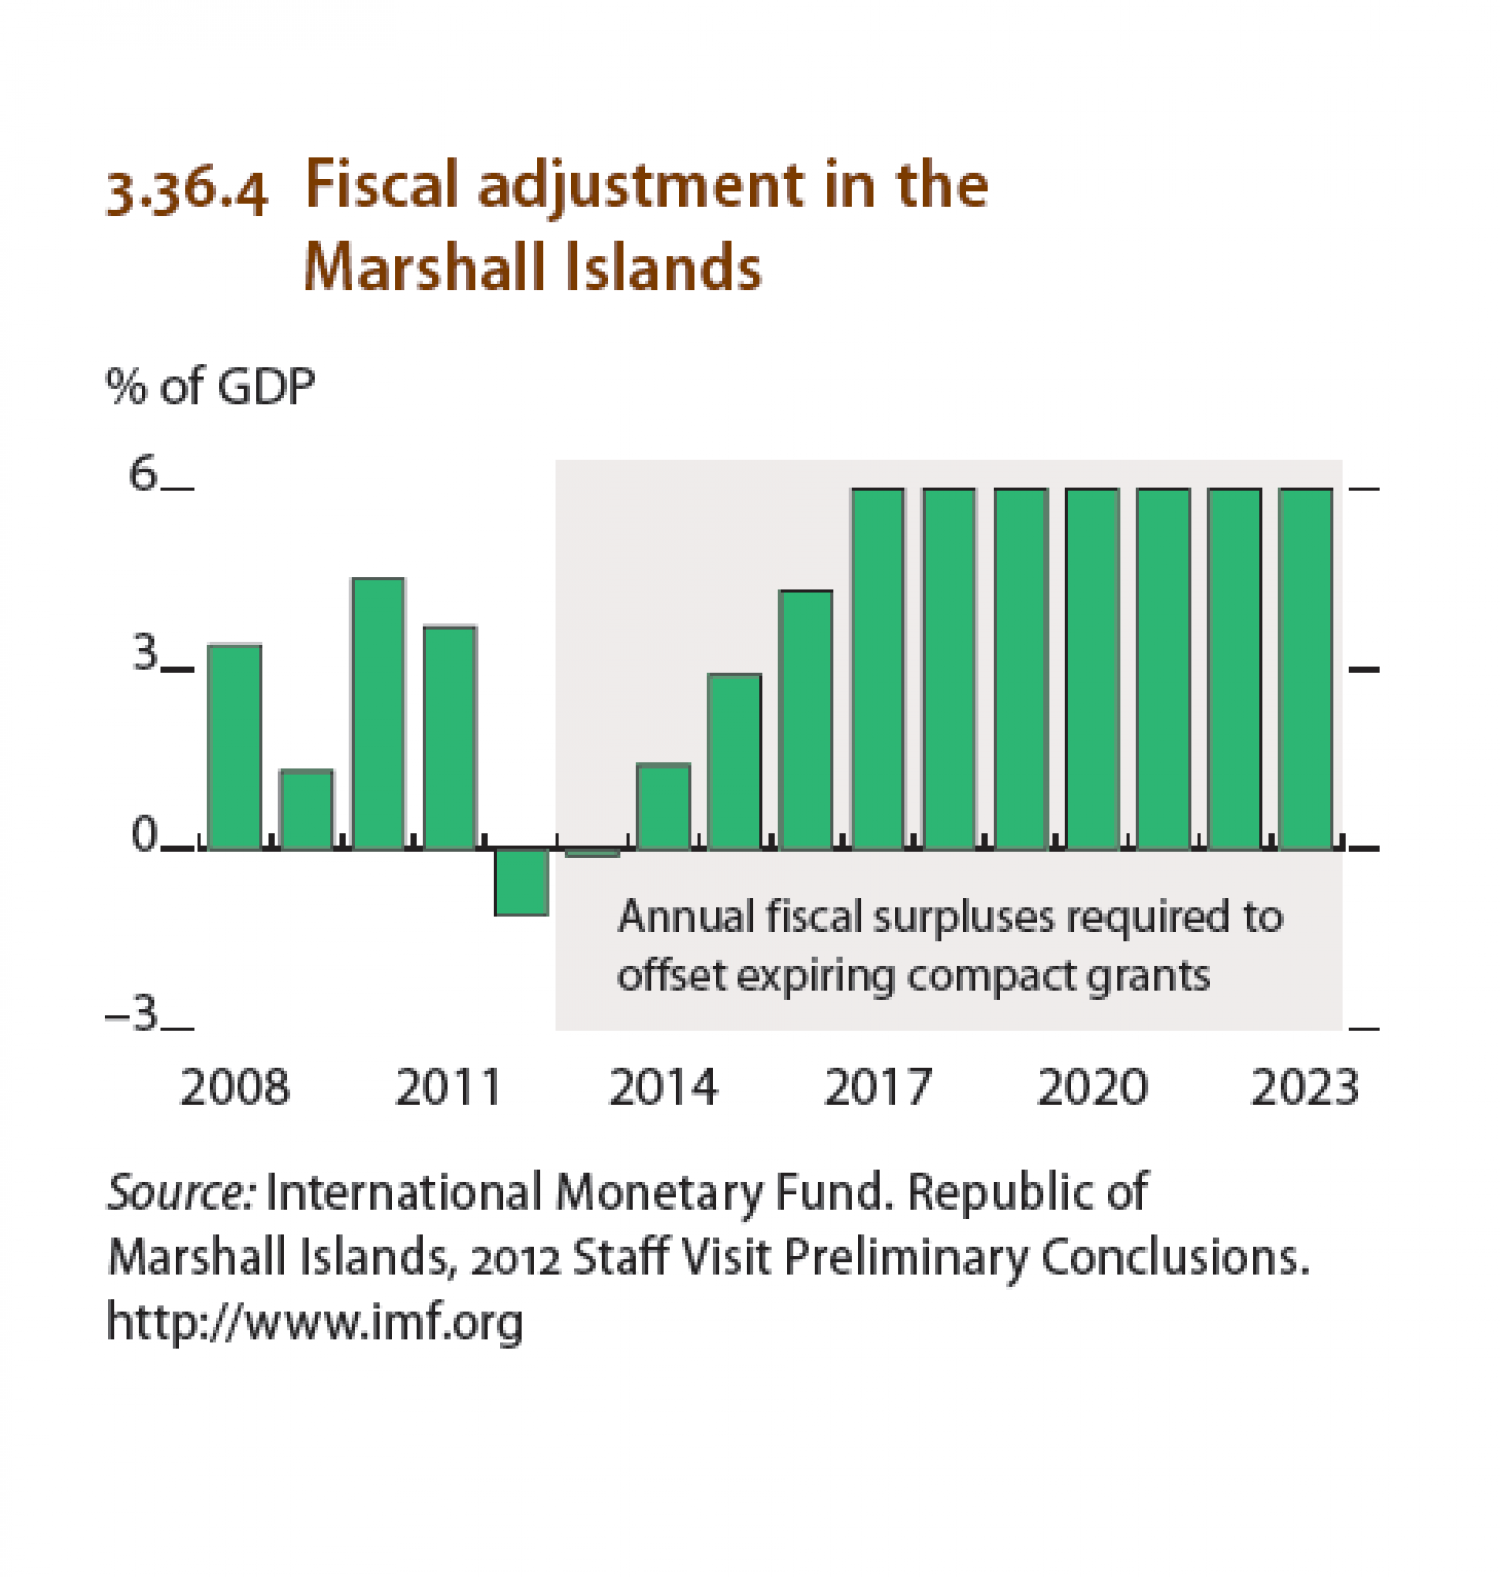 North Pacific economies : Fiscal adjustment in the Marshall Islands Infographic